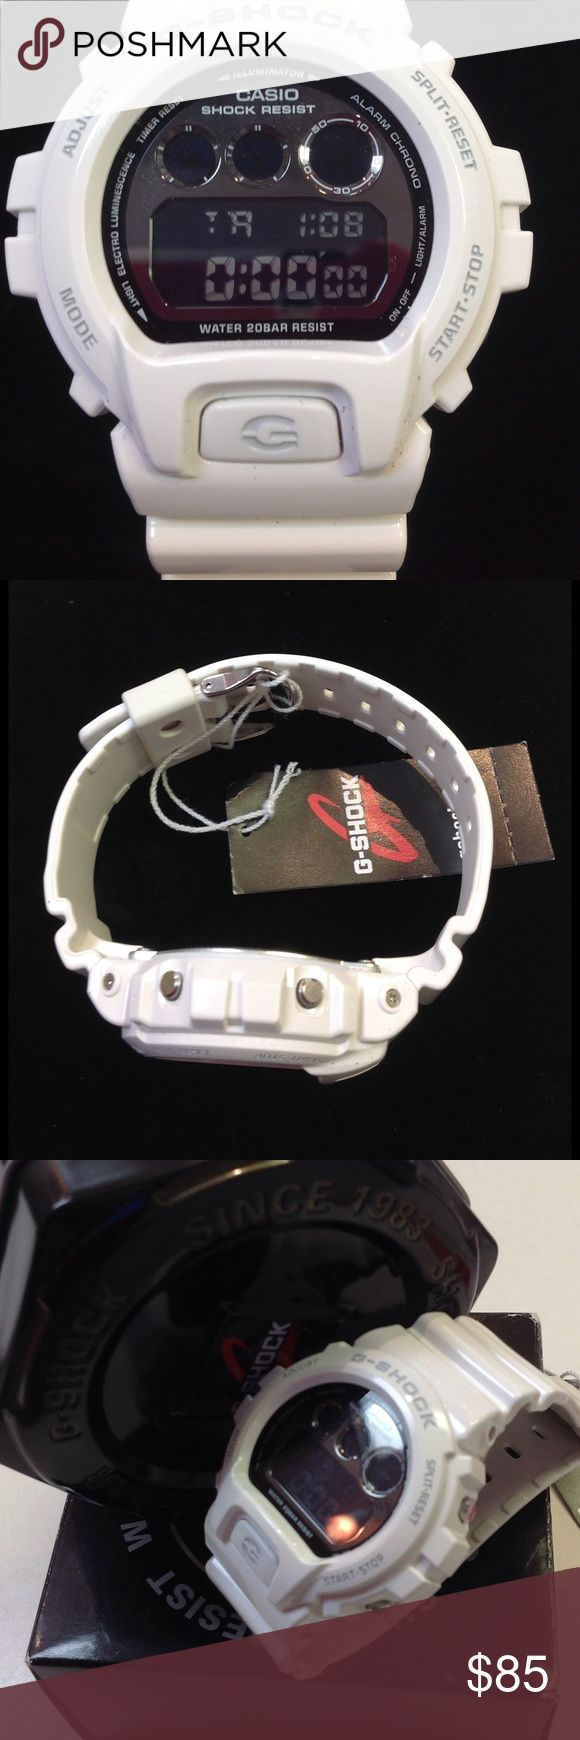 """Casio white g shock watch. Great for summer and travel . G shock watch by Casio. Water resists 20bar. Plastic band stainless back. Edge to edge 50mm. Band length including buckle 10"""" Casio Accessories Watches"""